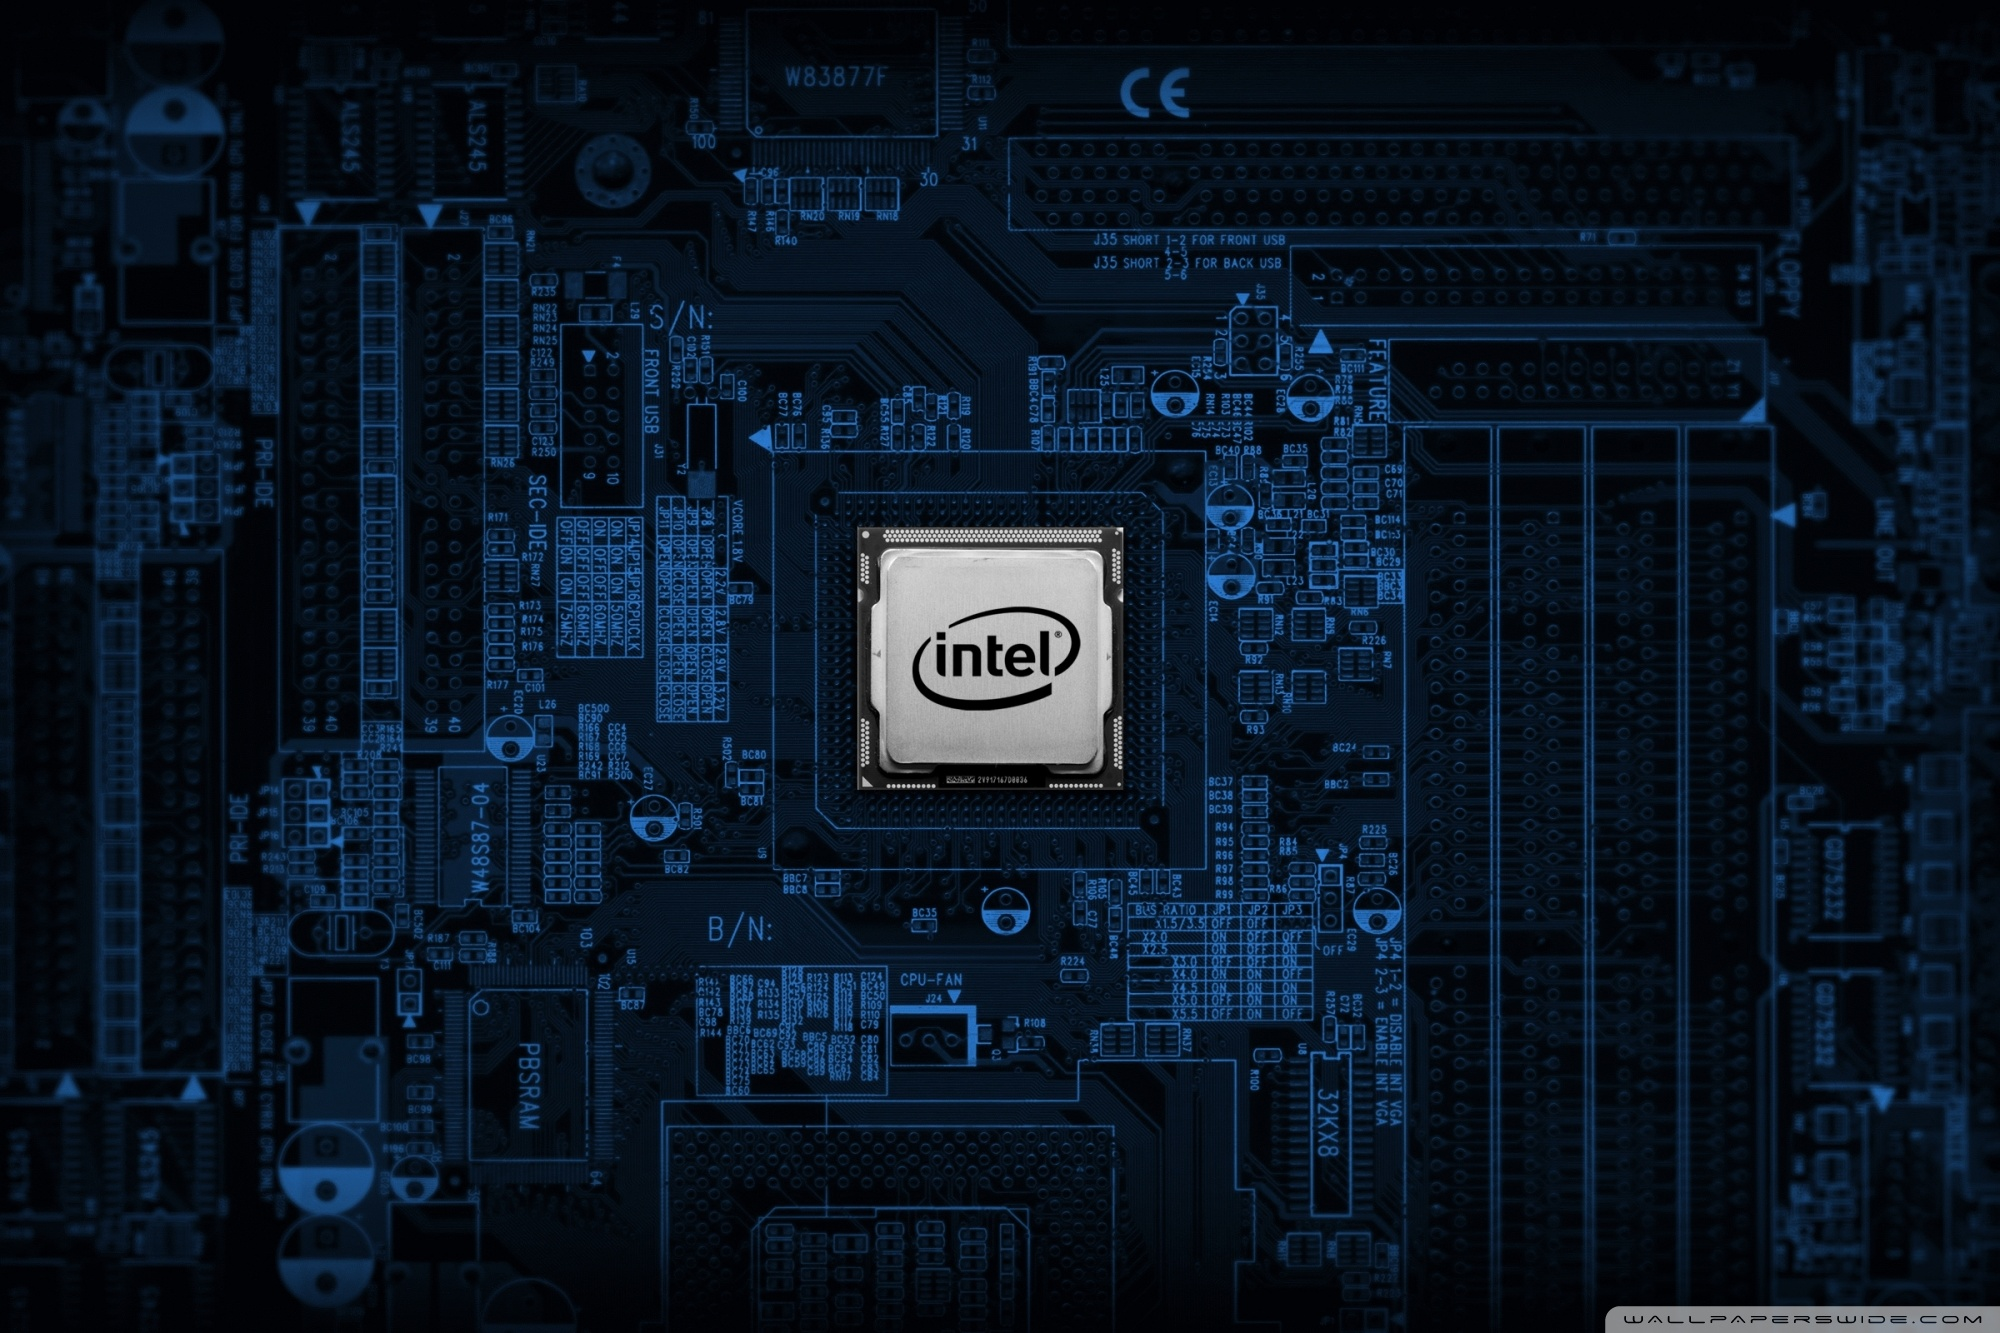 Intel Motherboard 4K HD Desktop Wallpaper for 4K Ultra HD TV 2000x1333